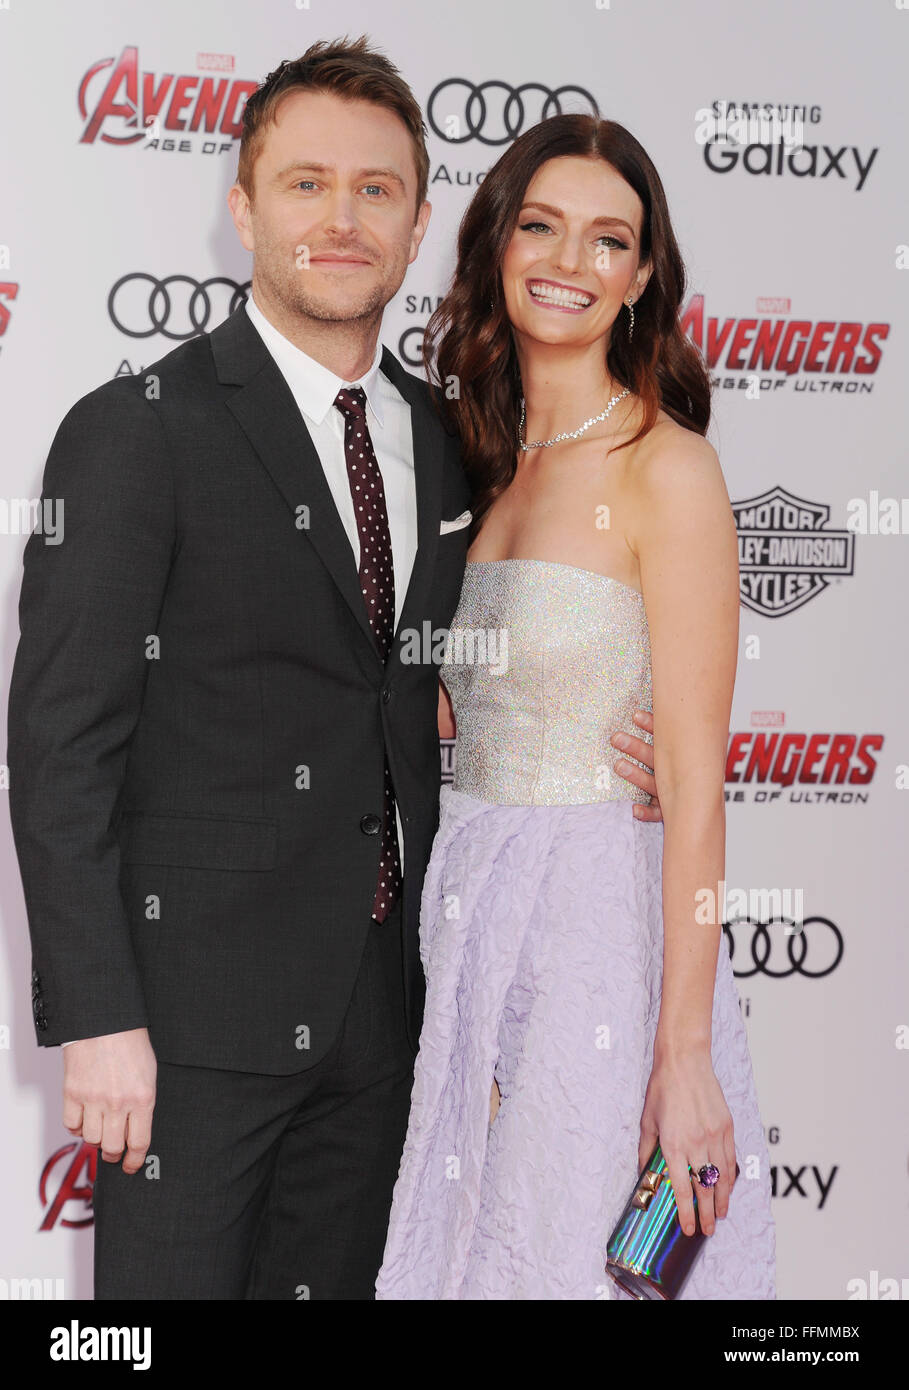 TV personality/comic Chris Hardwick (L) and actress/model Lydia Hearst arrive at the Marvel's 'Avengers: - Stock Image